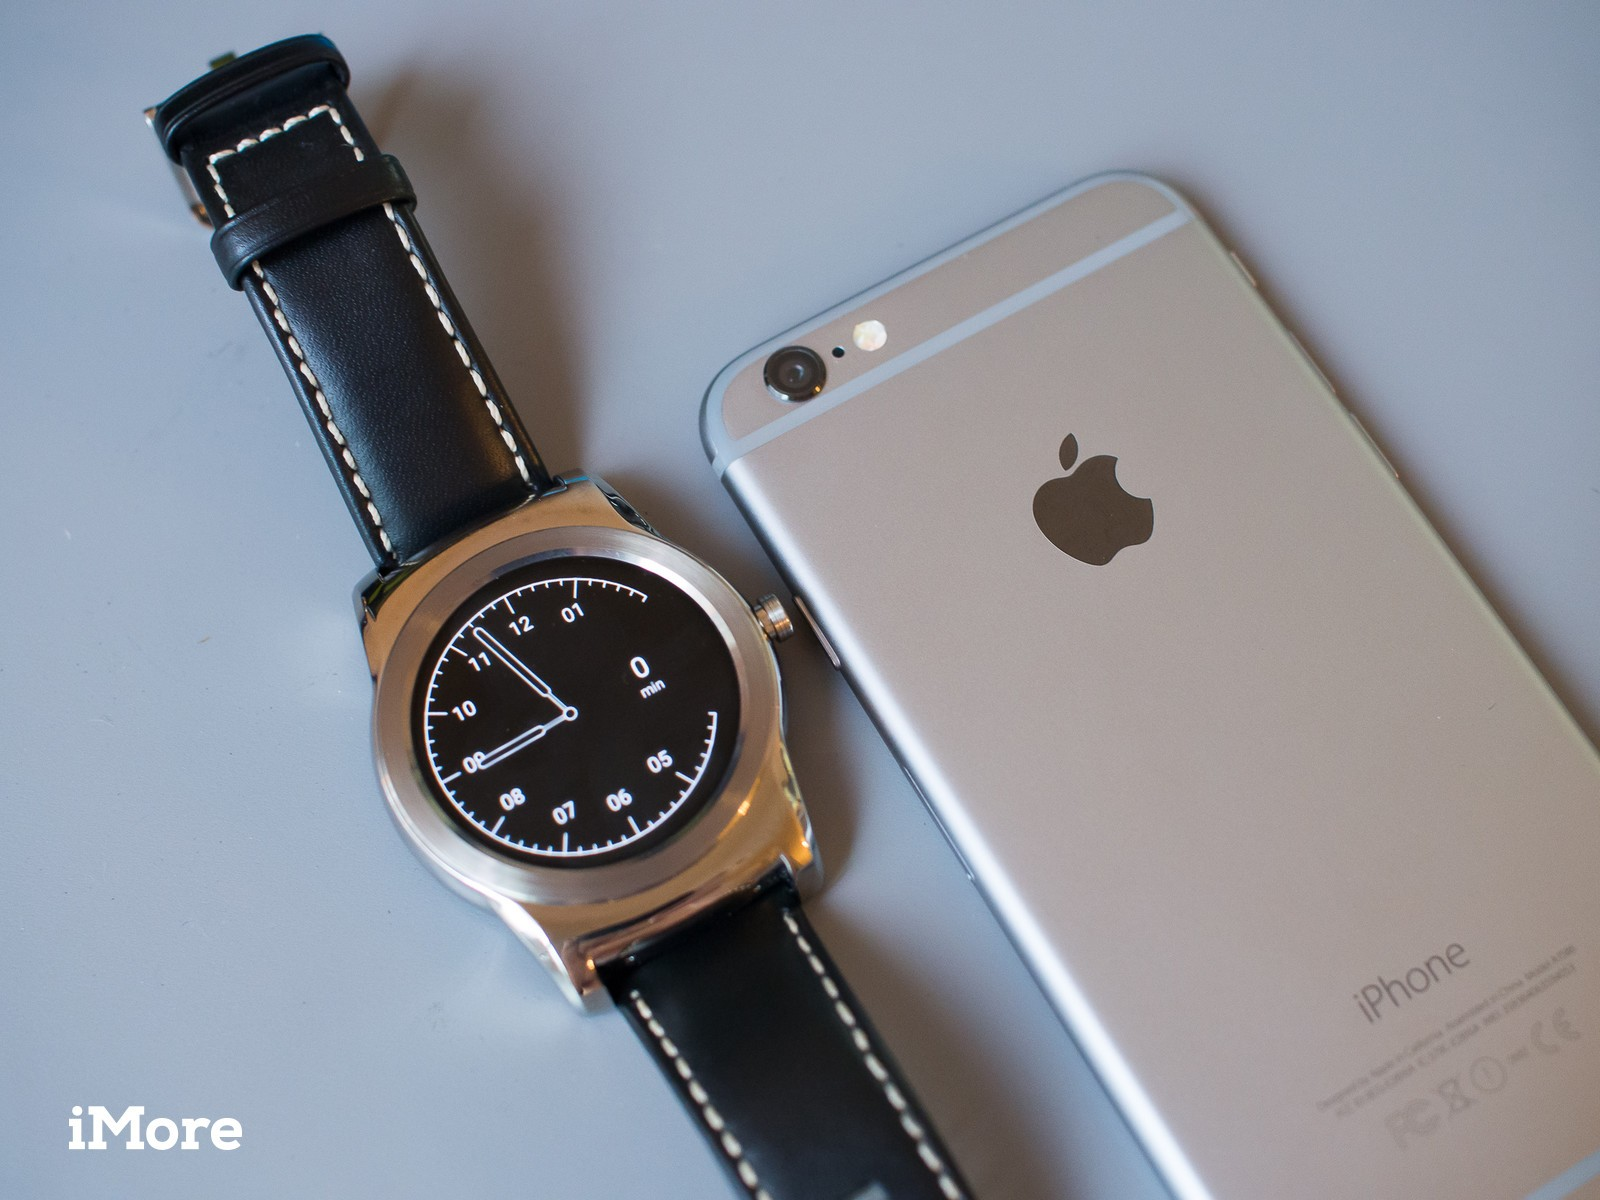 Android Wear gets official support for the iPhone